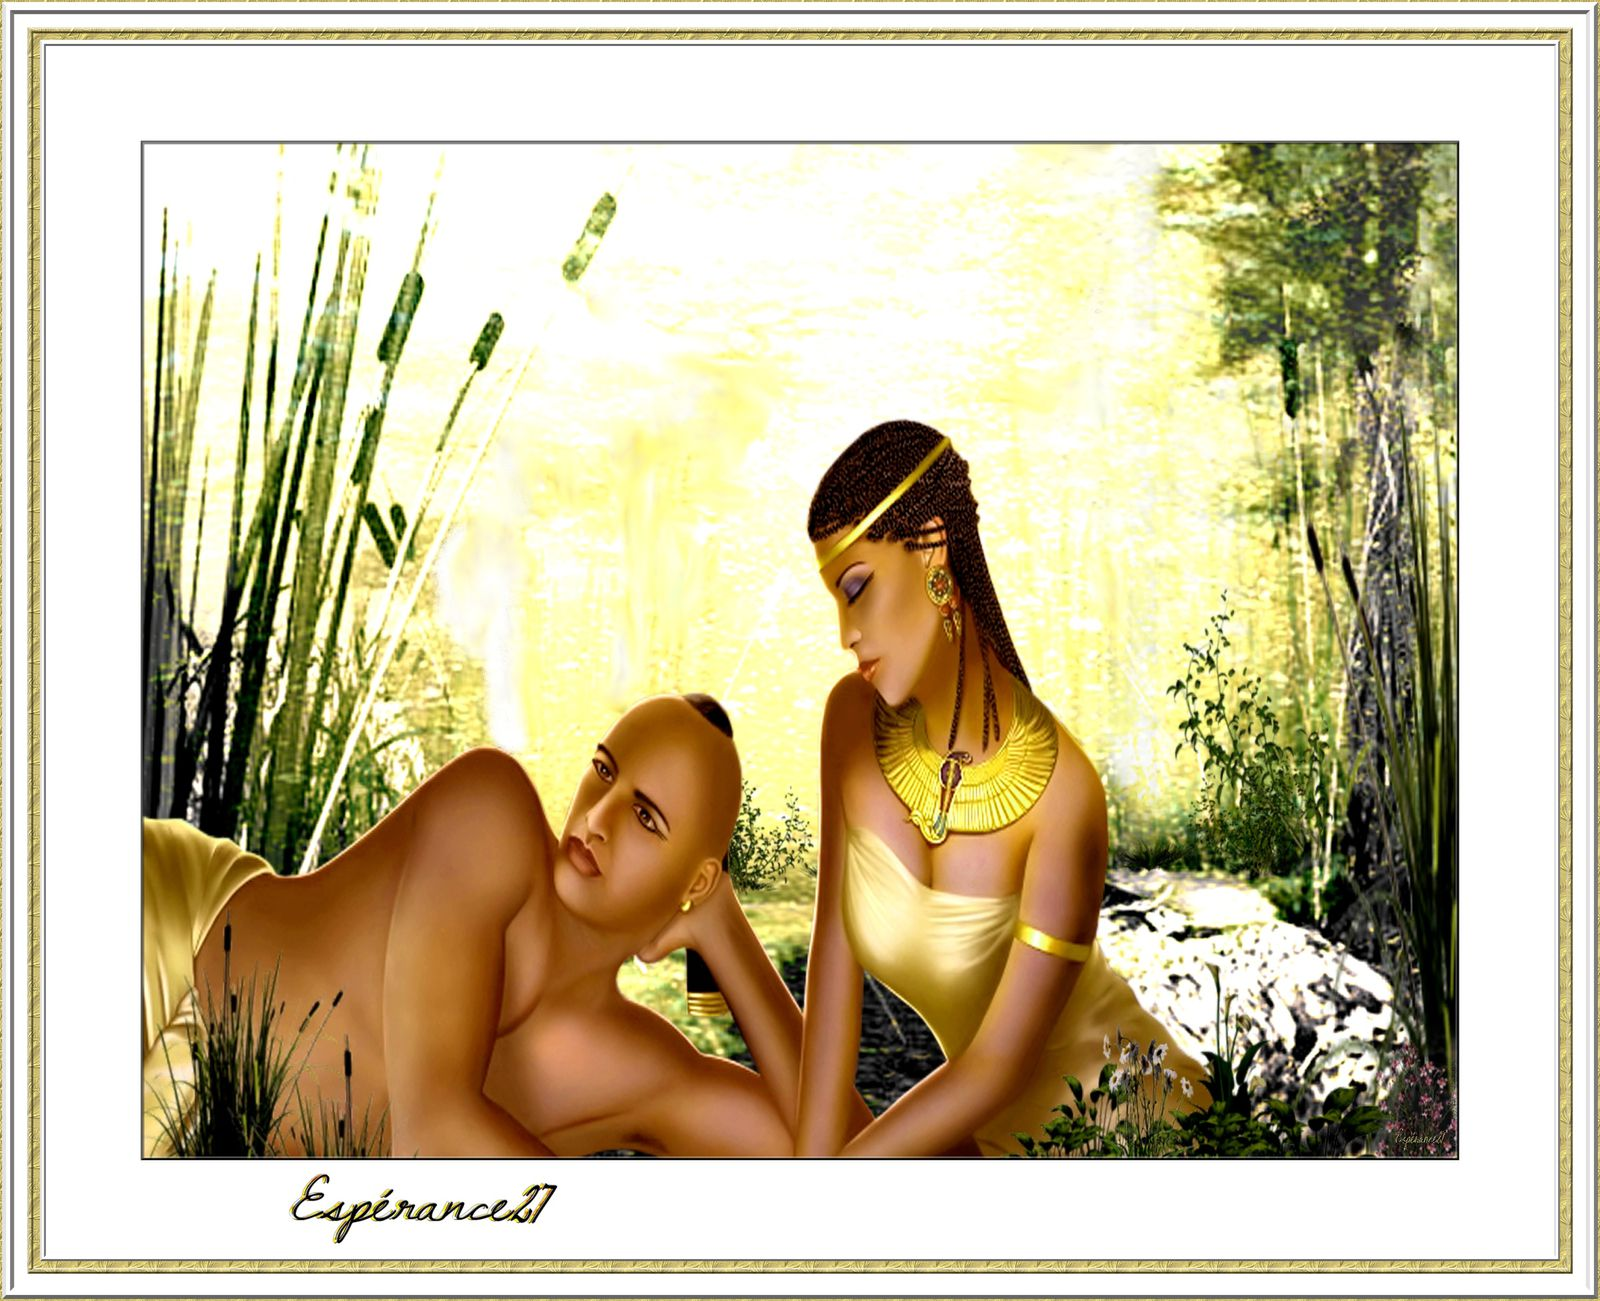 http://idata.over-blog.com/3/91/86/55/TENDRESSE/COULEUR-AFRICAINE/AMOUR/AMOUR-2/1814.jpg